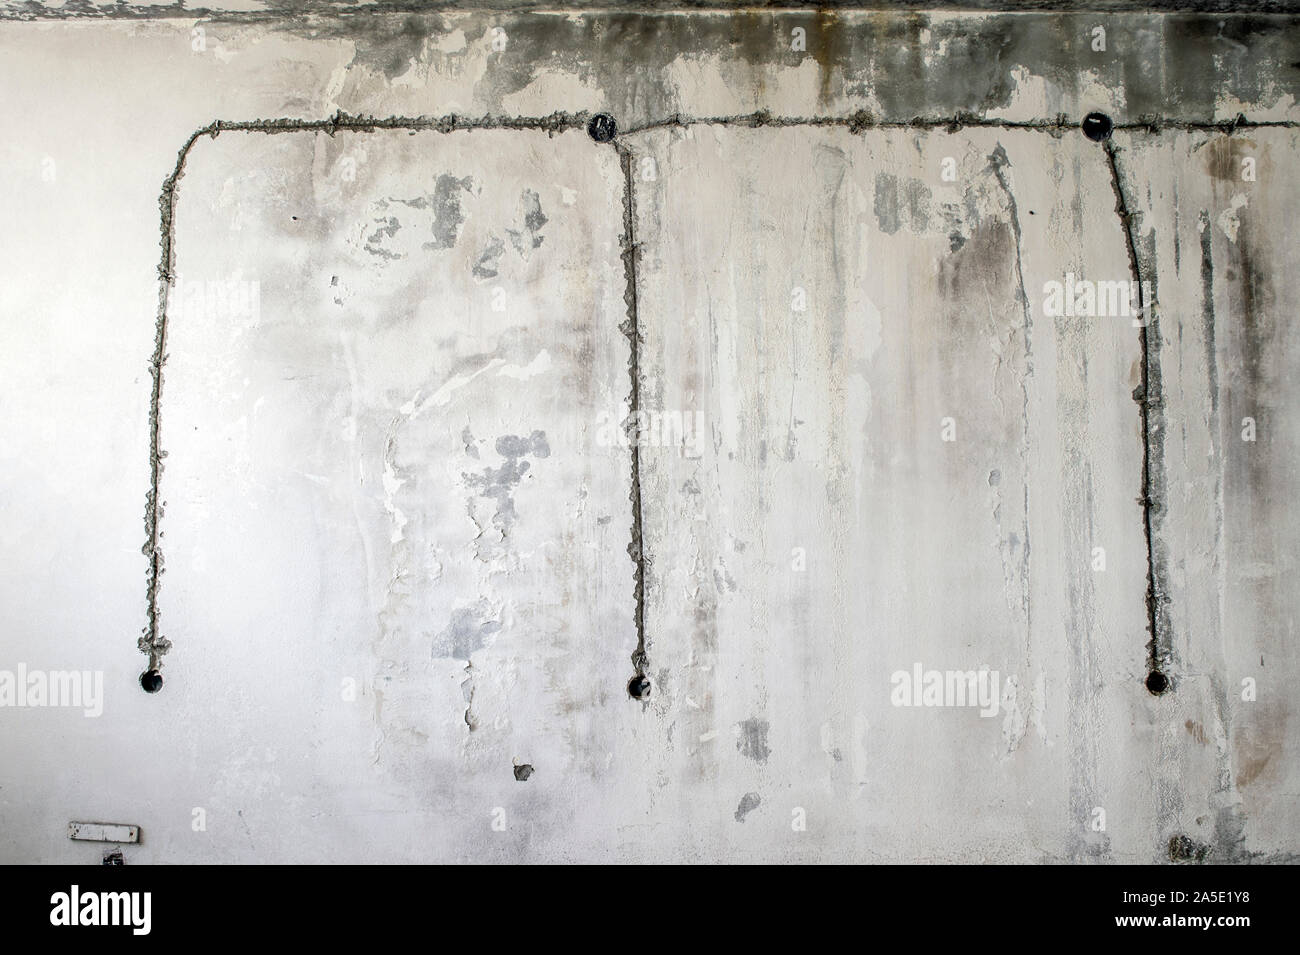 White Concrete Wall Of An Old Building With An Old Wiring Diagram Of Electrical Outlets Background Stock Photo Alamy